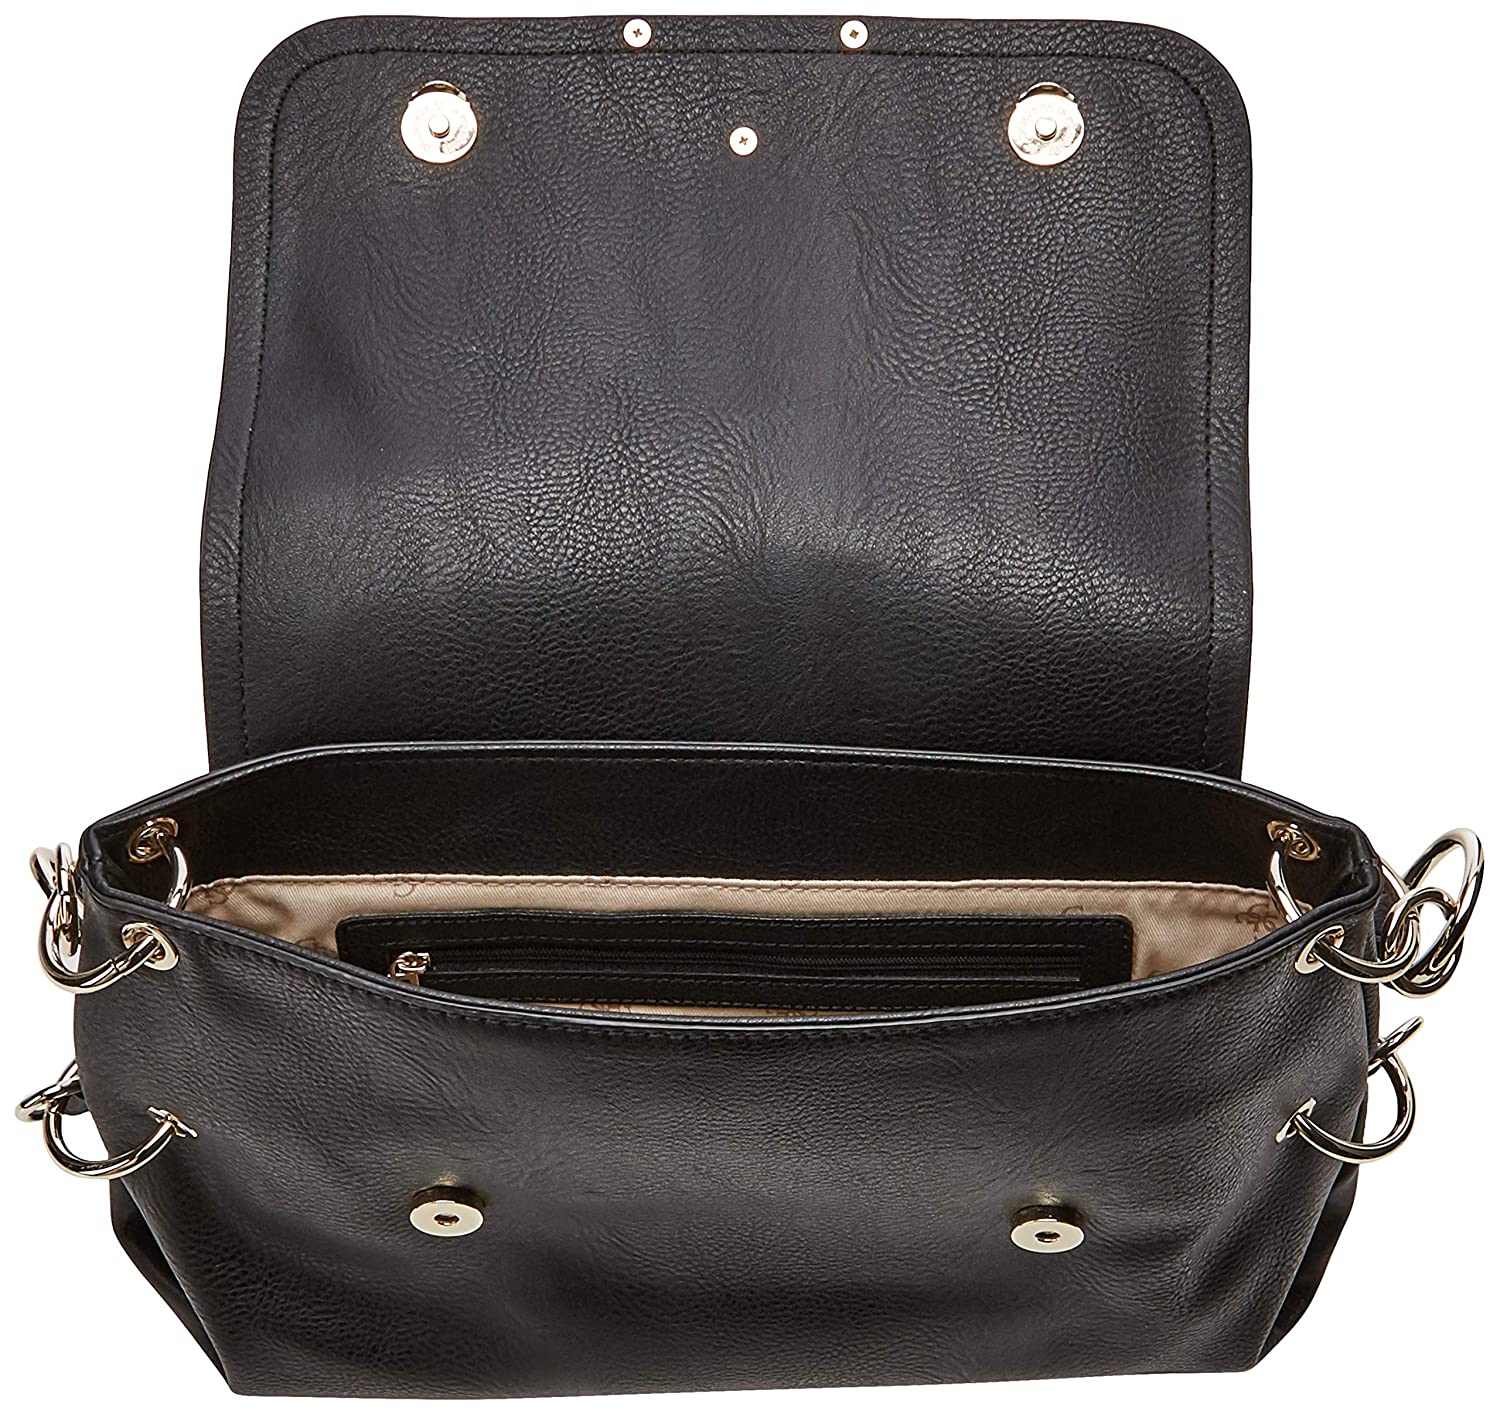 Guess dam Cary Shoulder Bag axelväska Svart (Black)